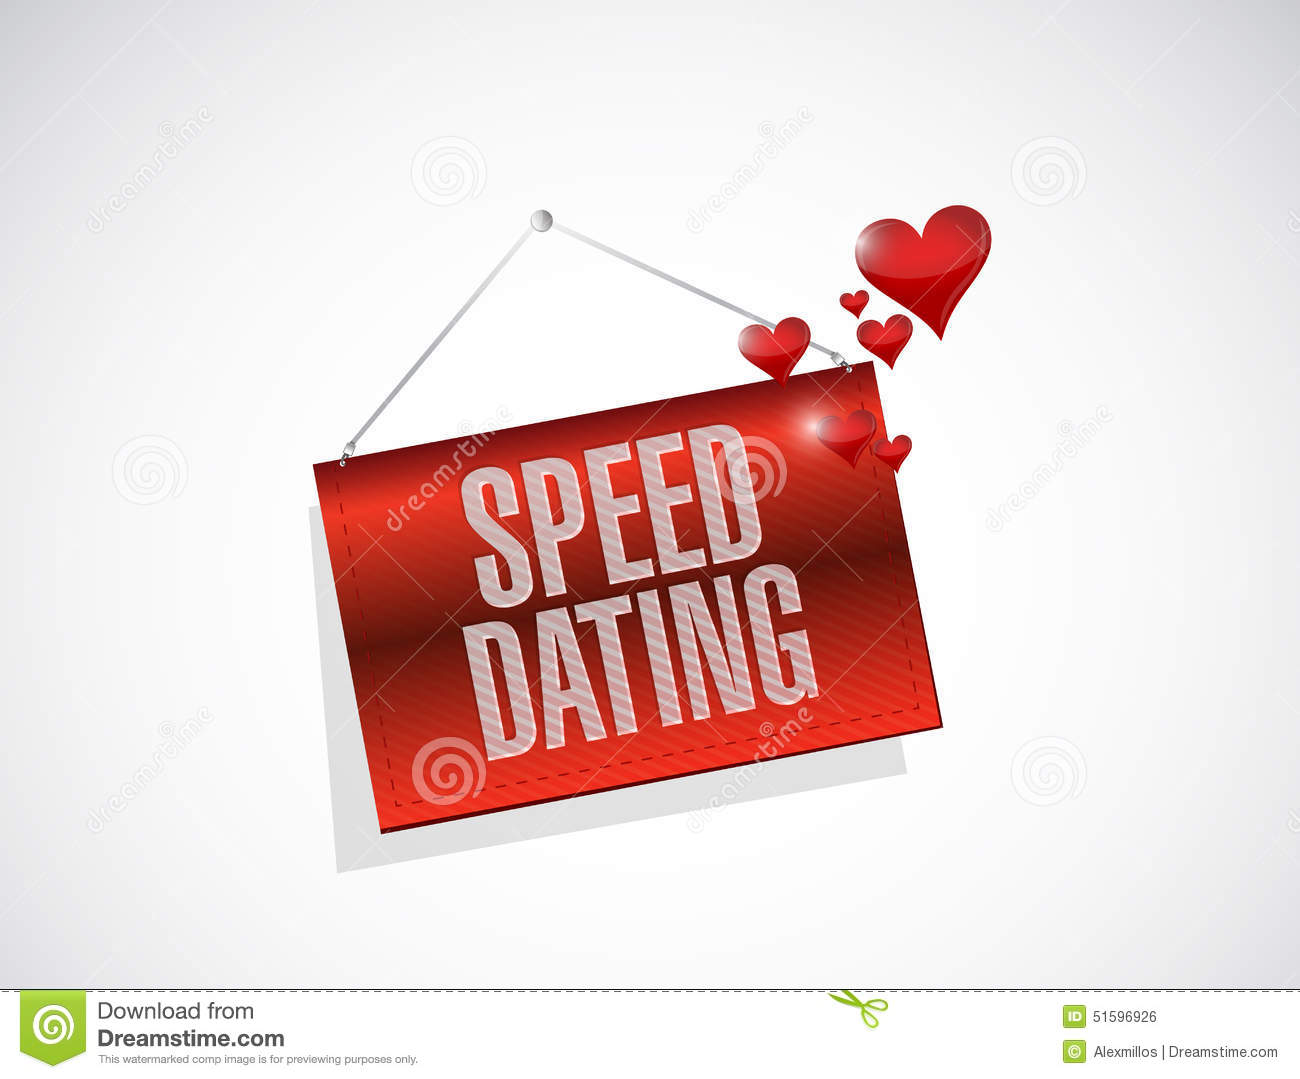 from Levi conceptual speed dating